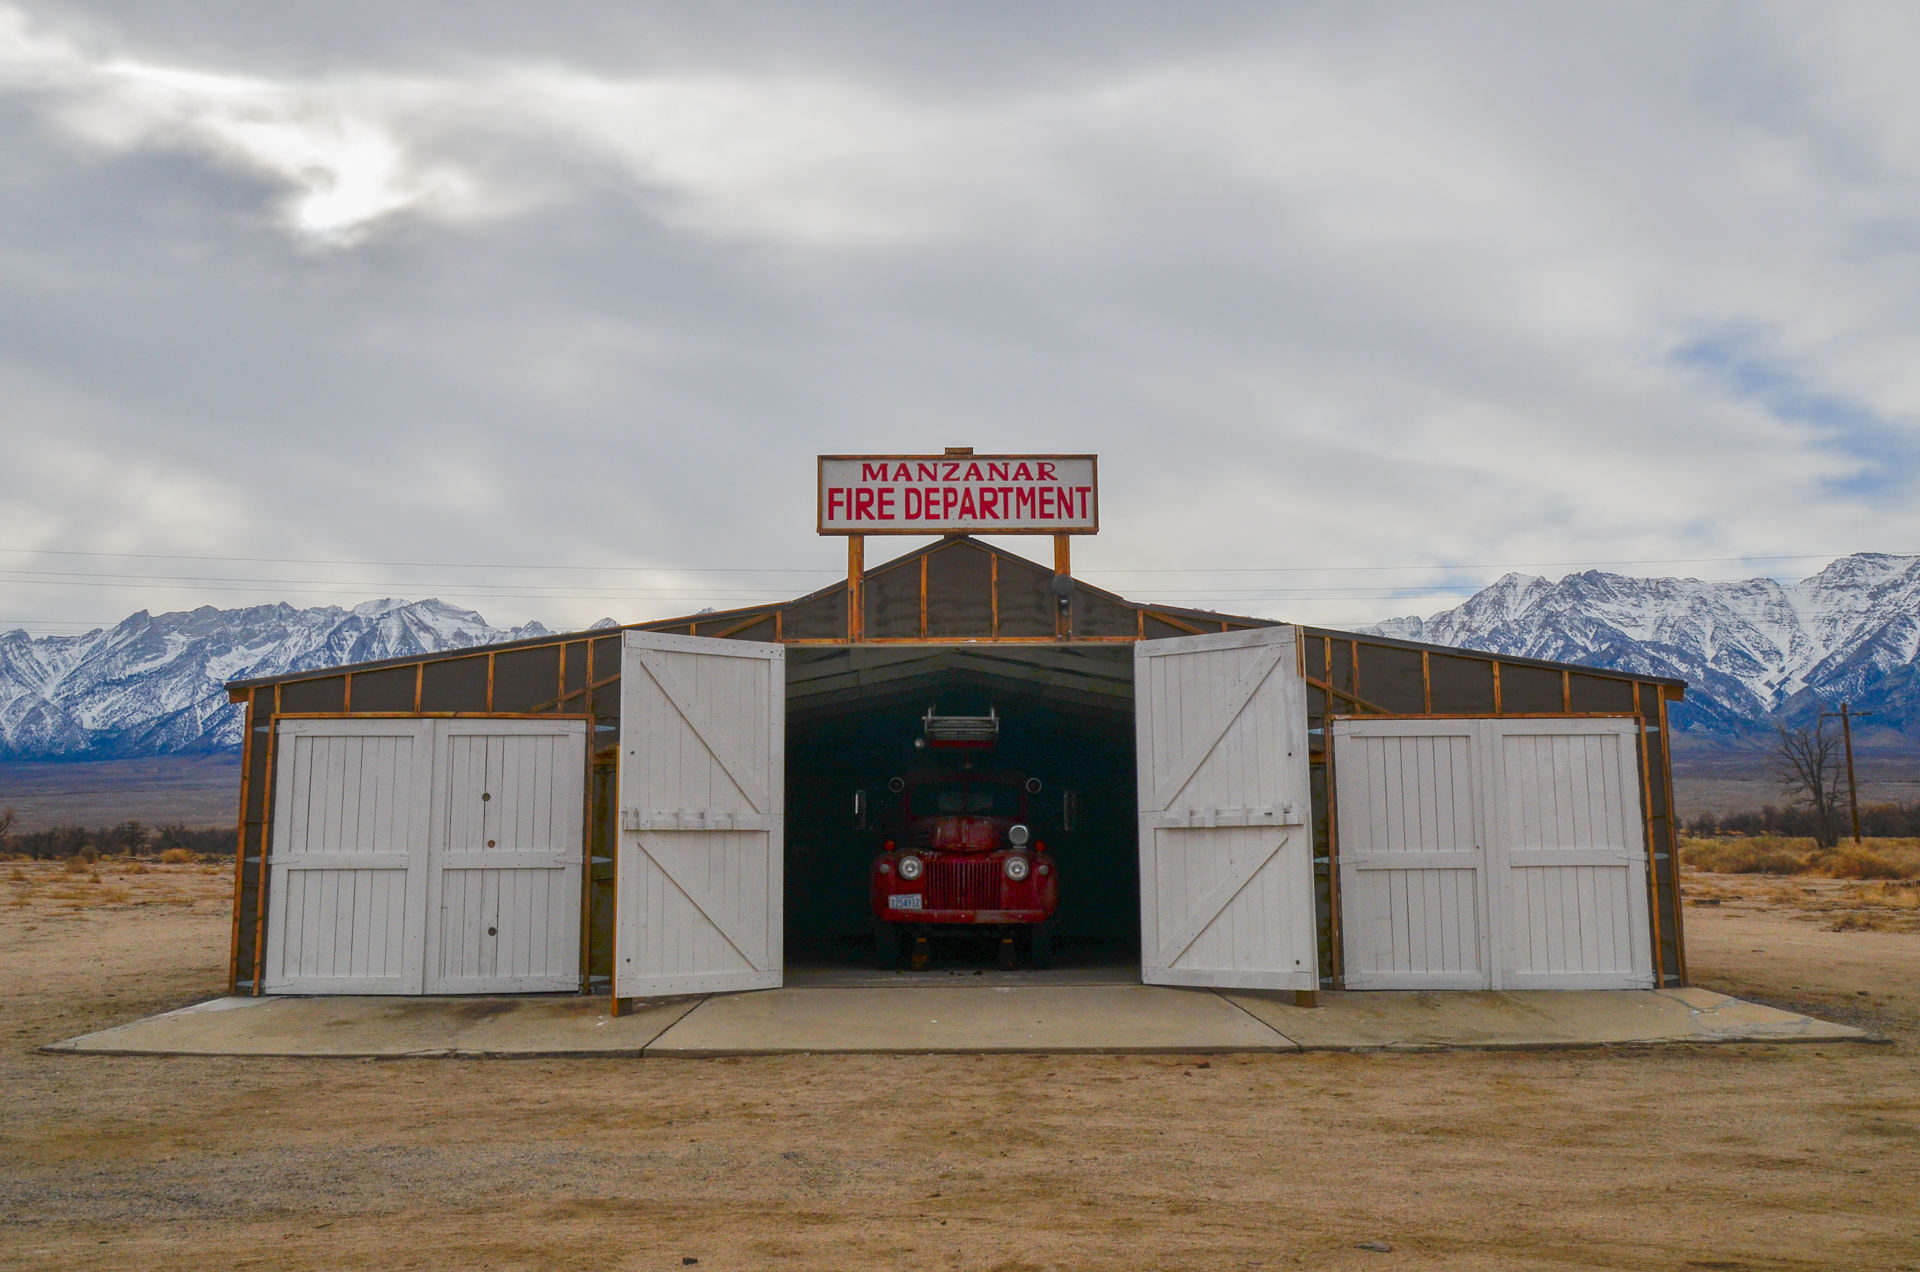 Manzanar Fire Department  ©Emmaleigh Hundley